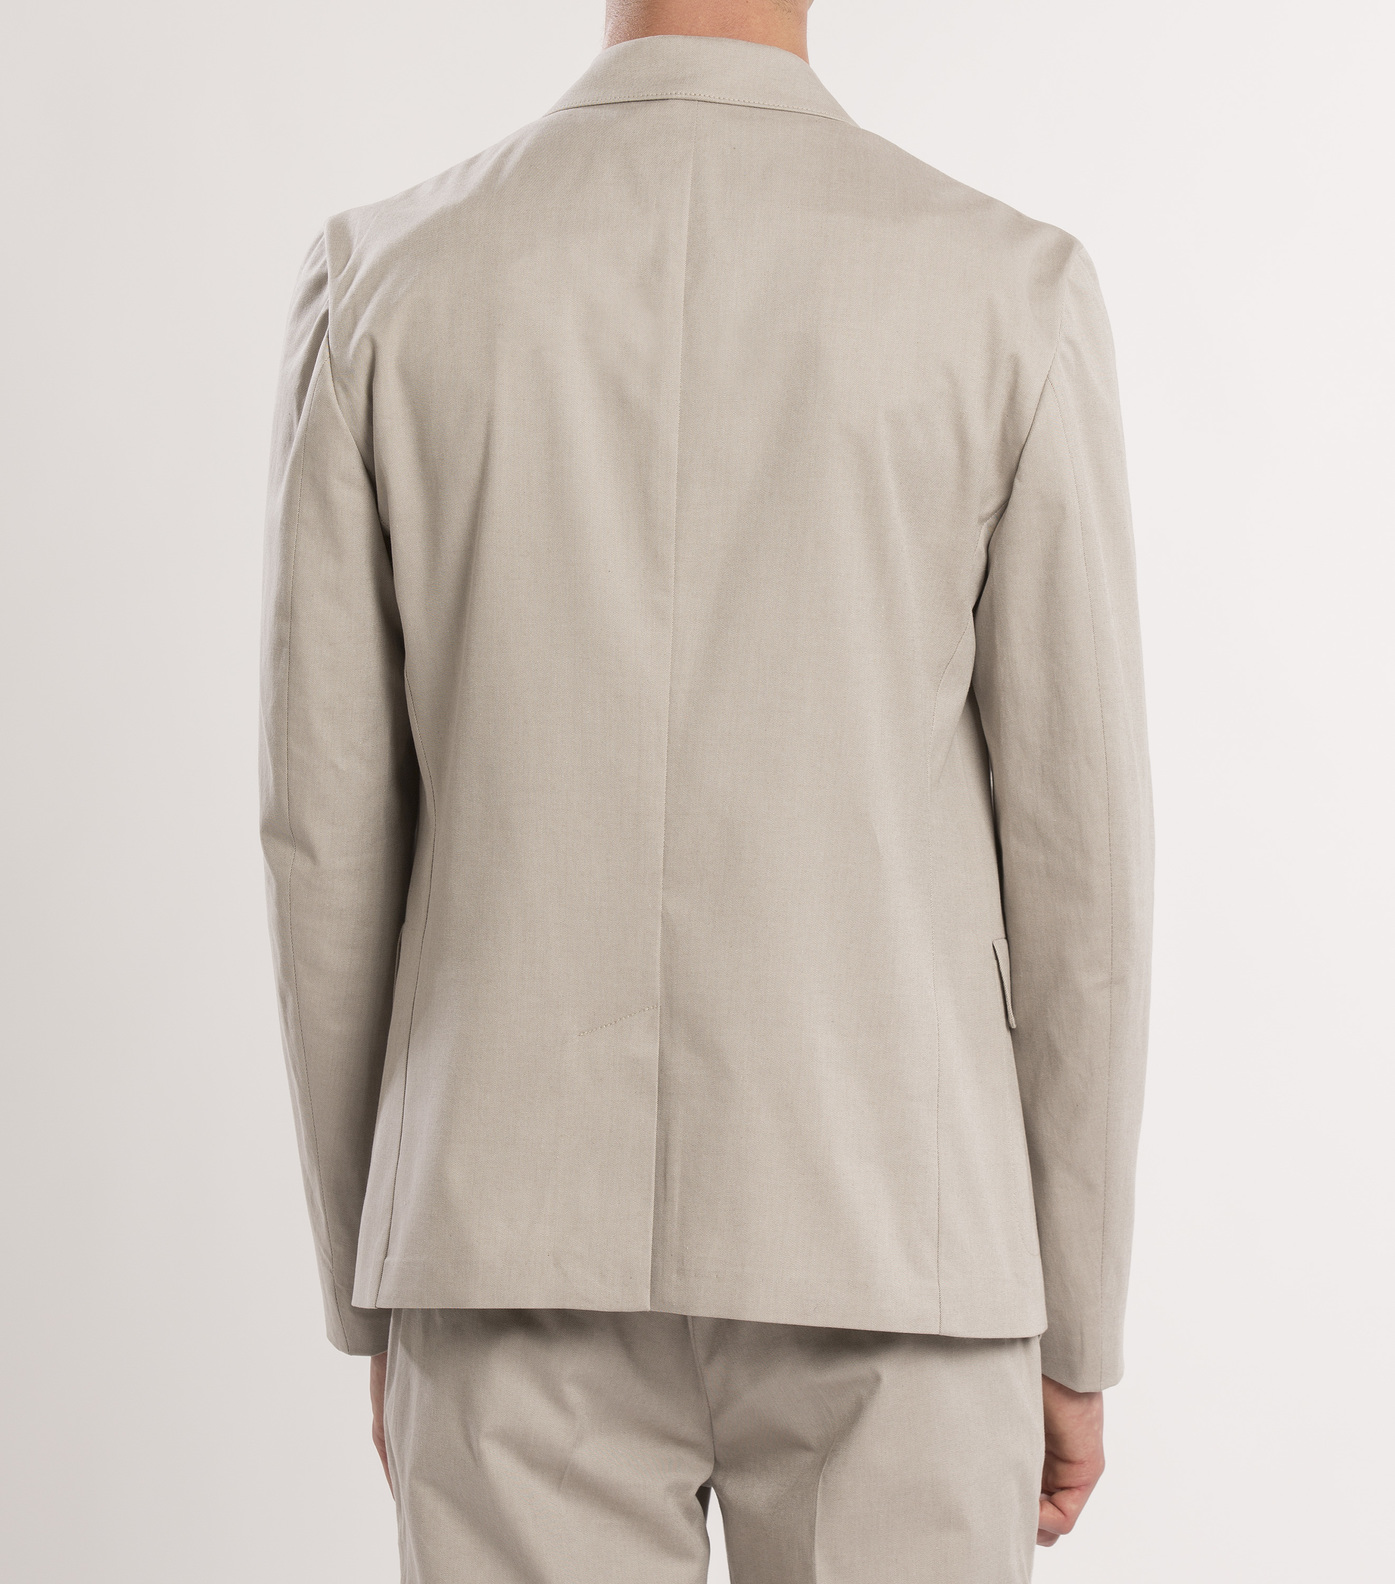 SUIT JACKET  PROTOT - Beige